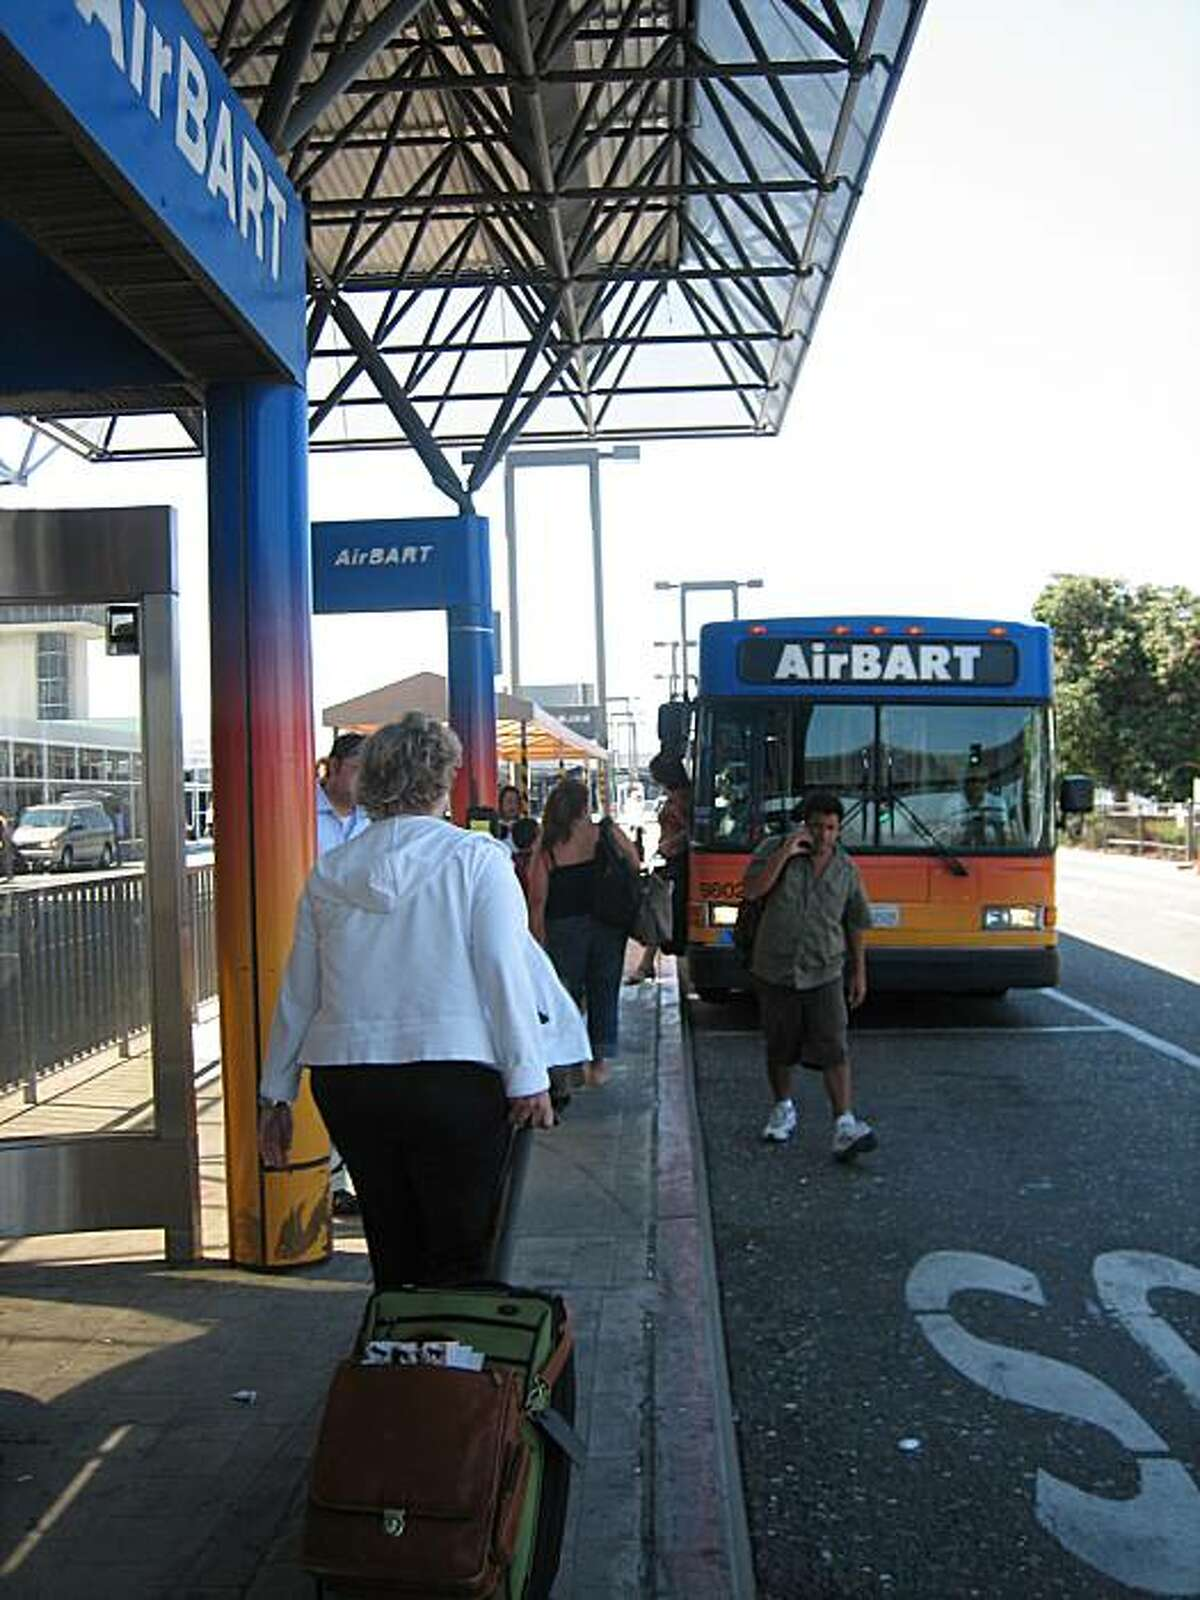 AirBart stops have been relocated, but the small signs do little to alert passengers waiting at old AirBart platforms.